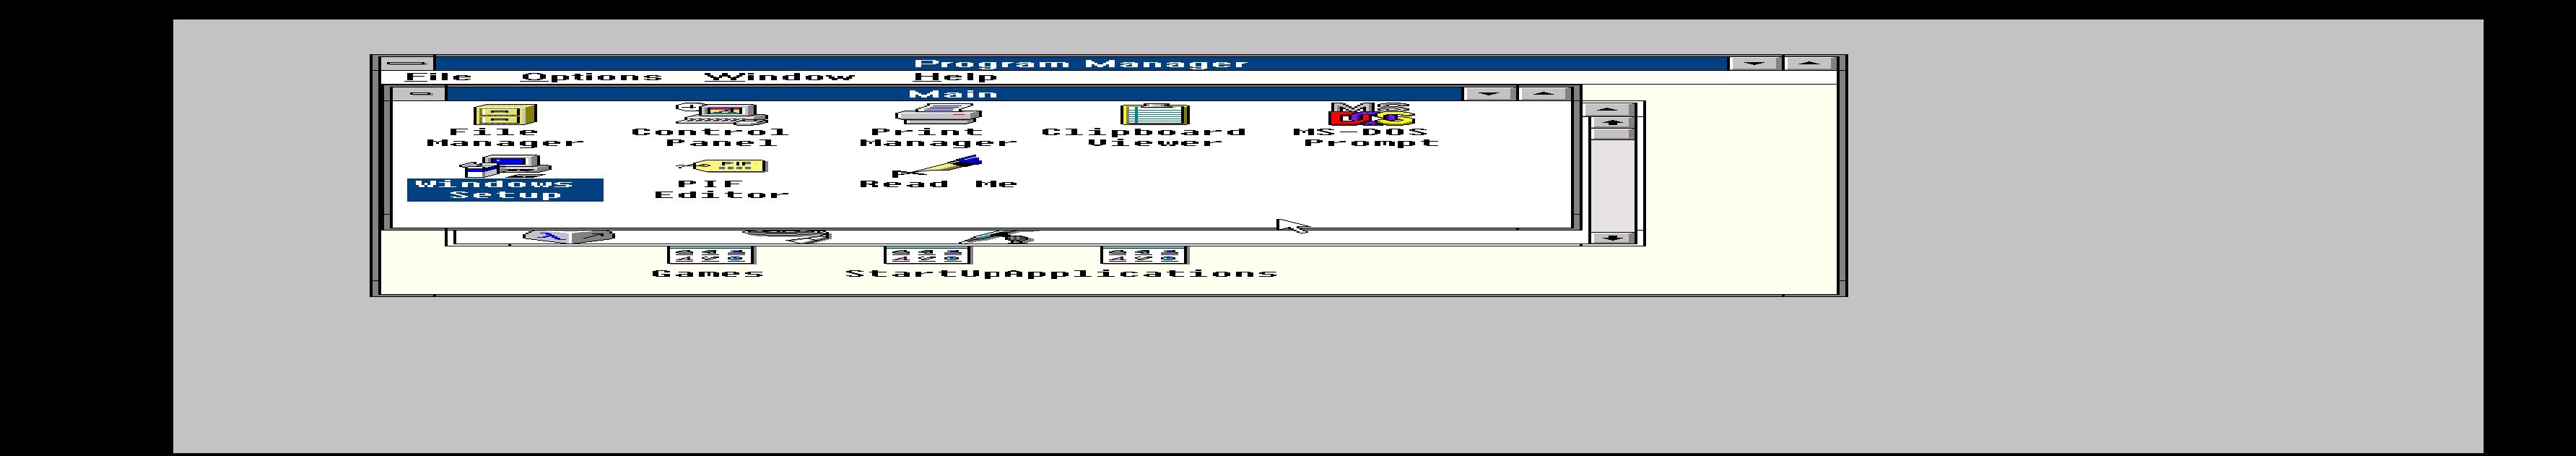 920-Windows 3.1 on 800x600x64K.jpg